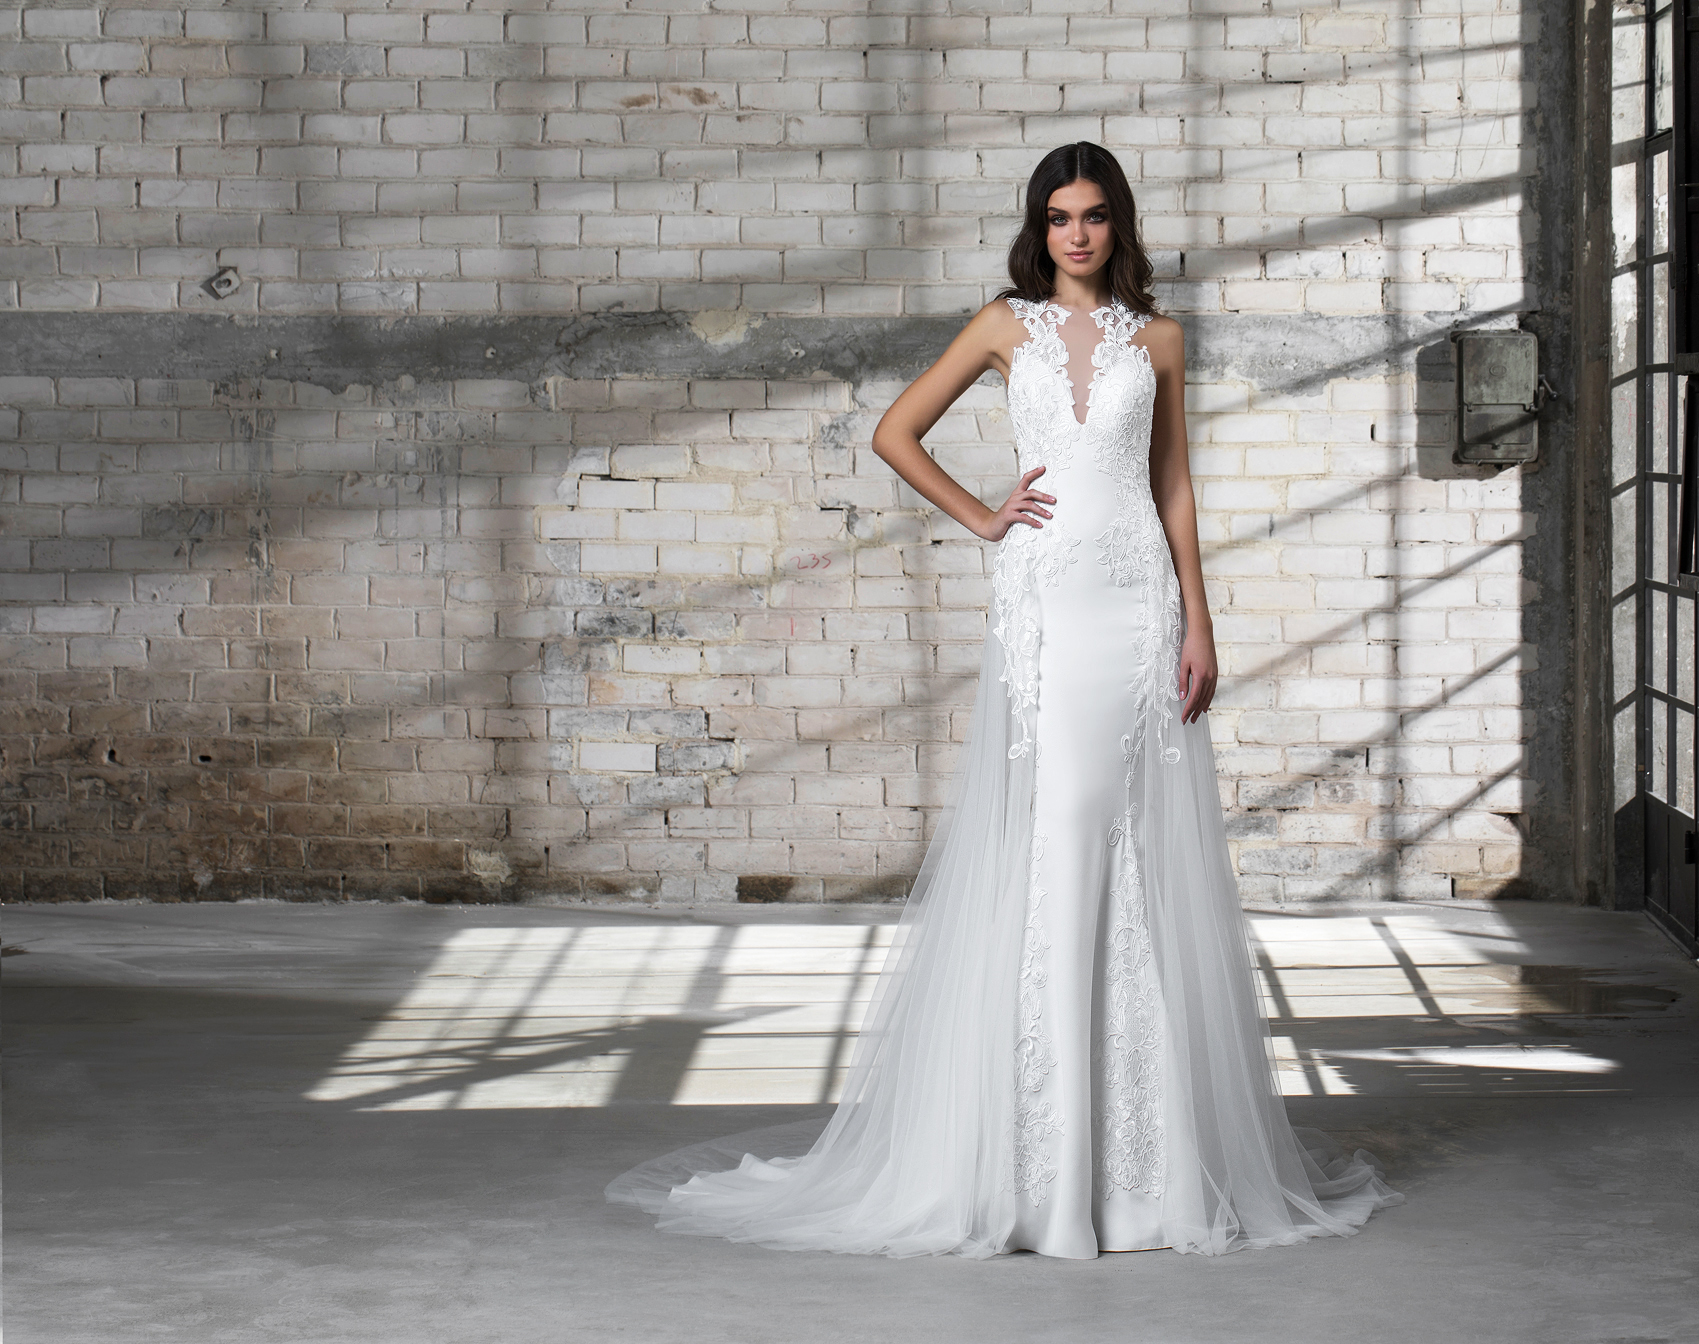 pnina tornai wedding dress spring 2019 lace sleeveless a-line